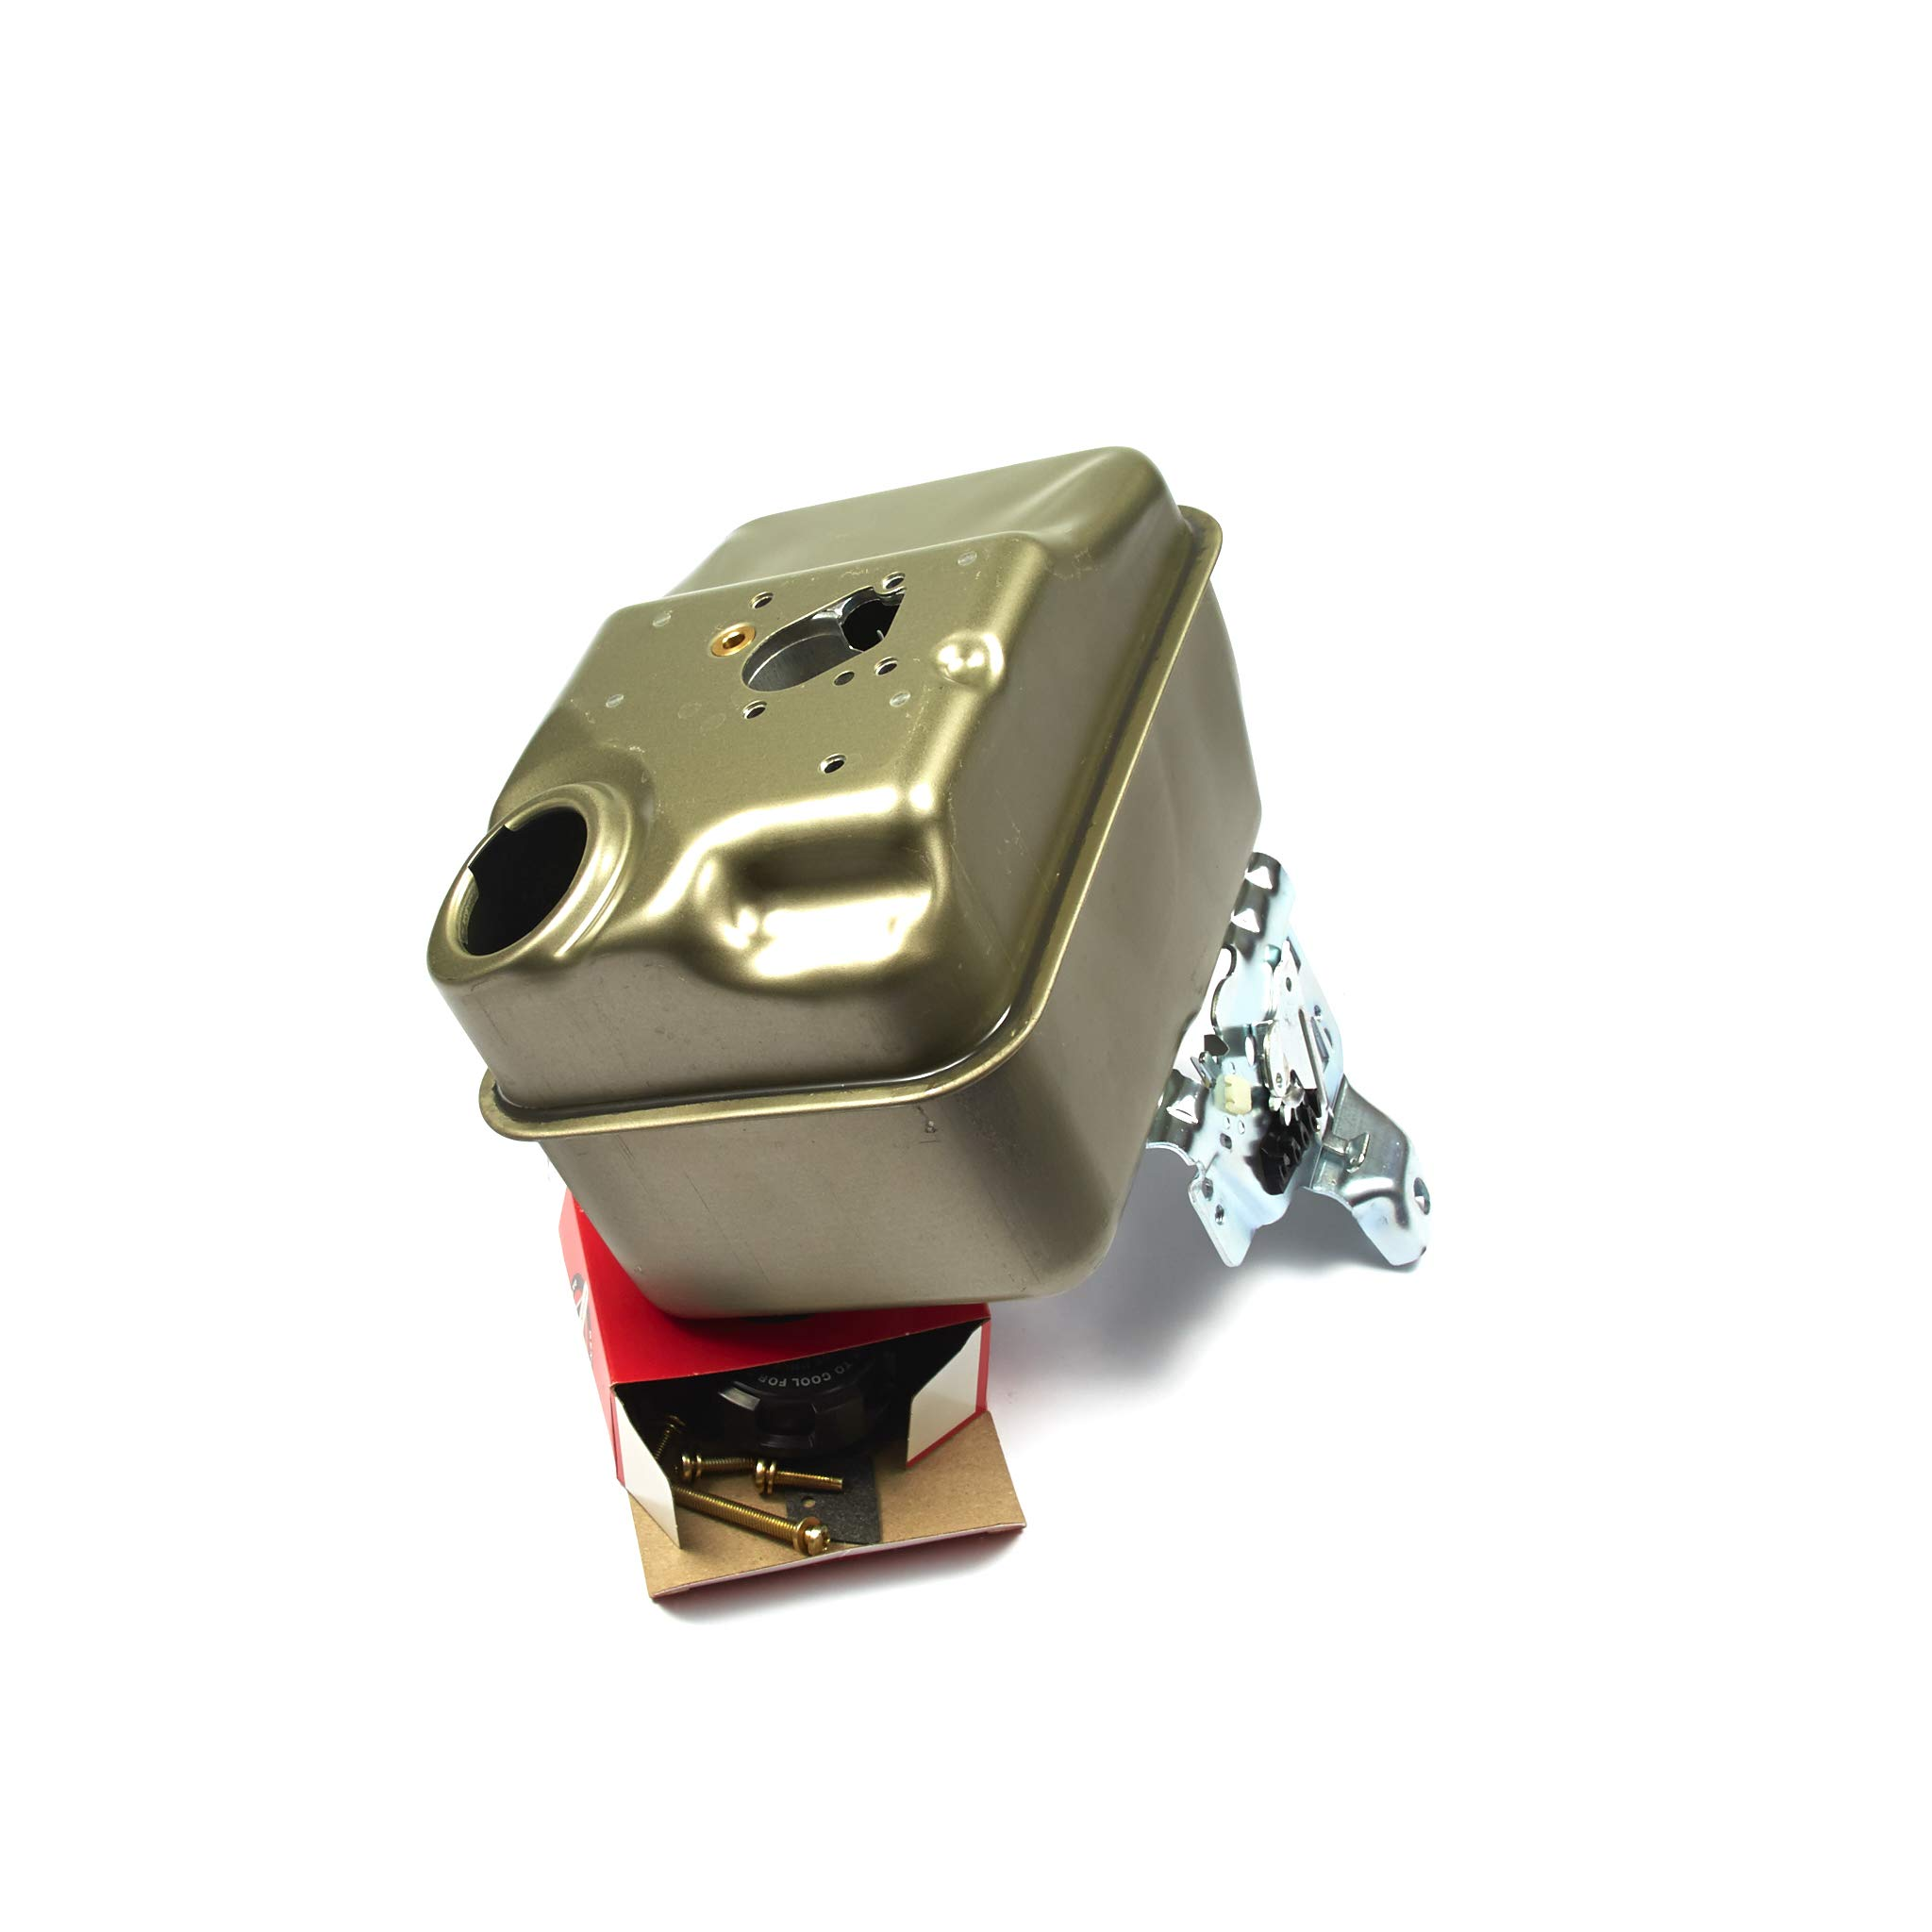 Briggs & Stratton 694315 Fuel Tank Replacement for Models 498691, 498107 and 497678